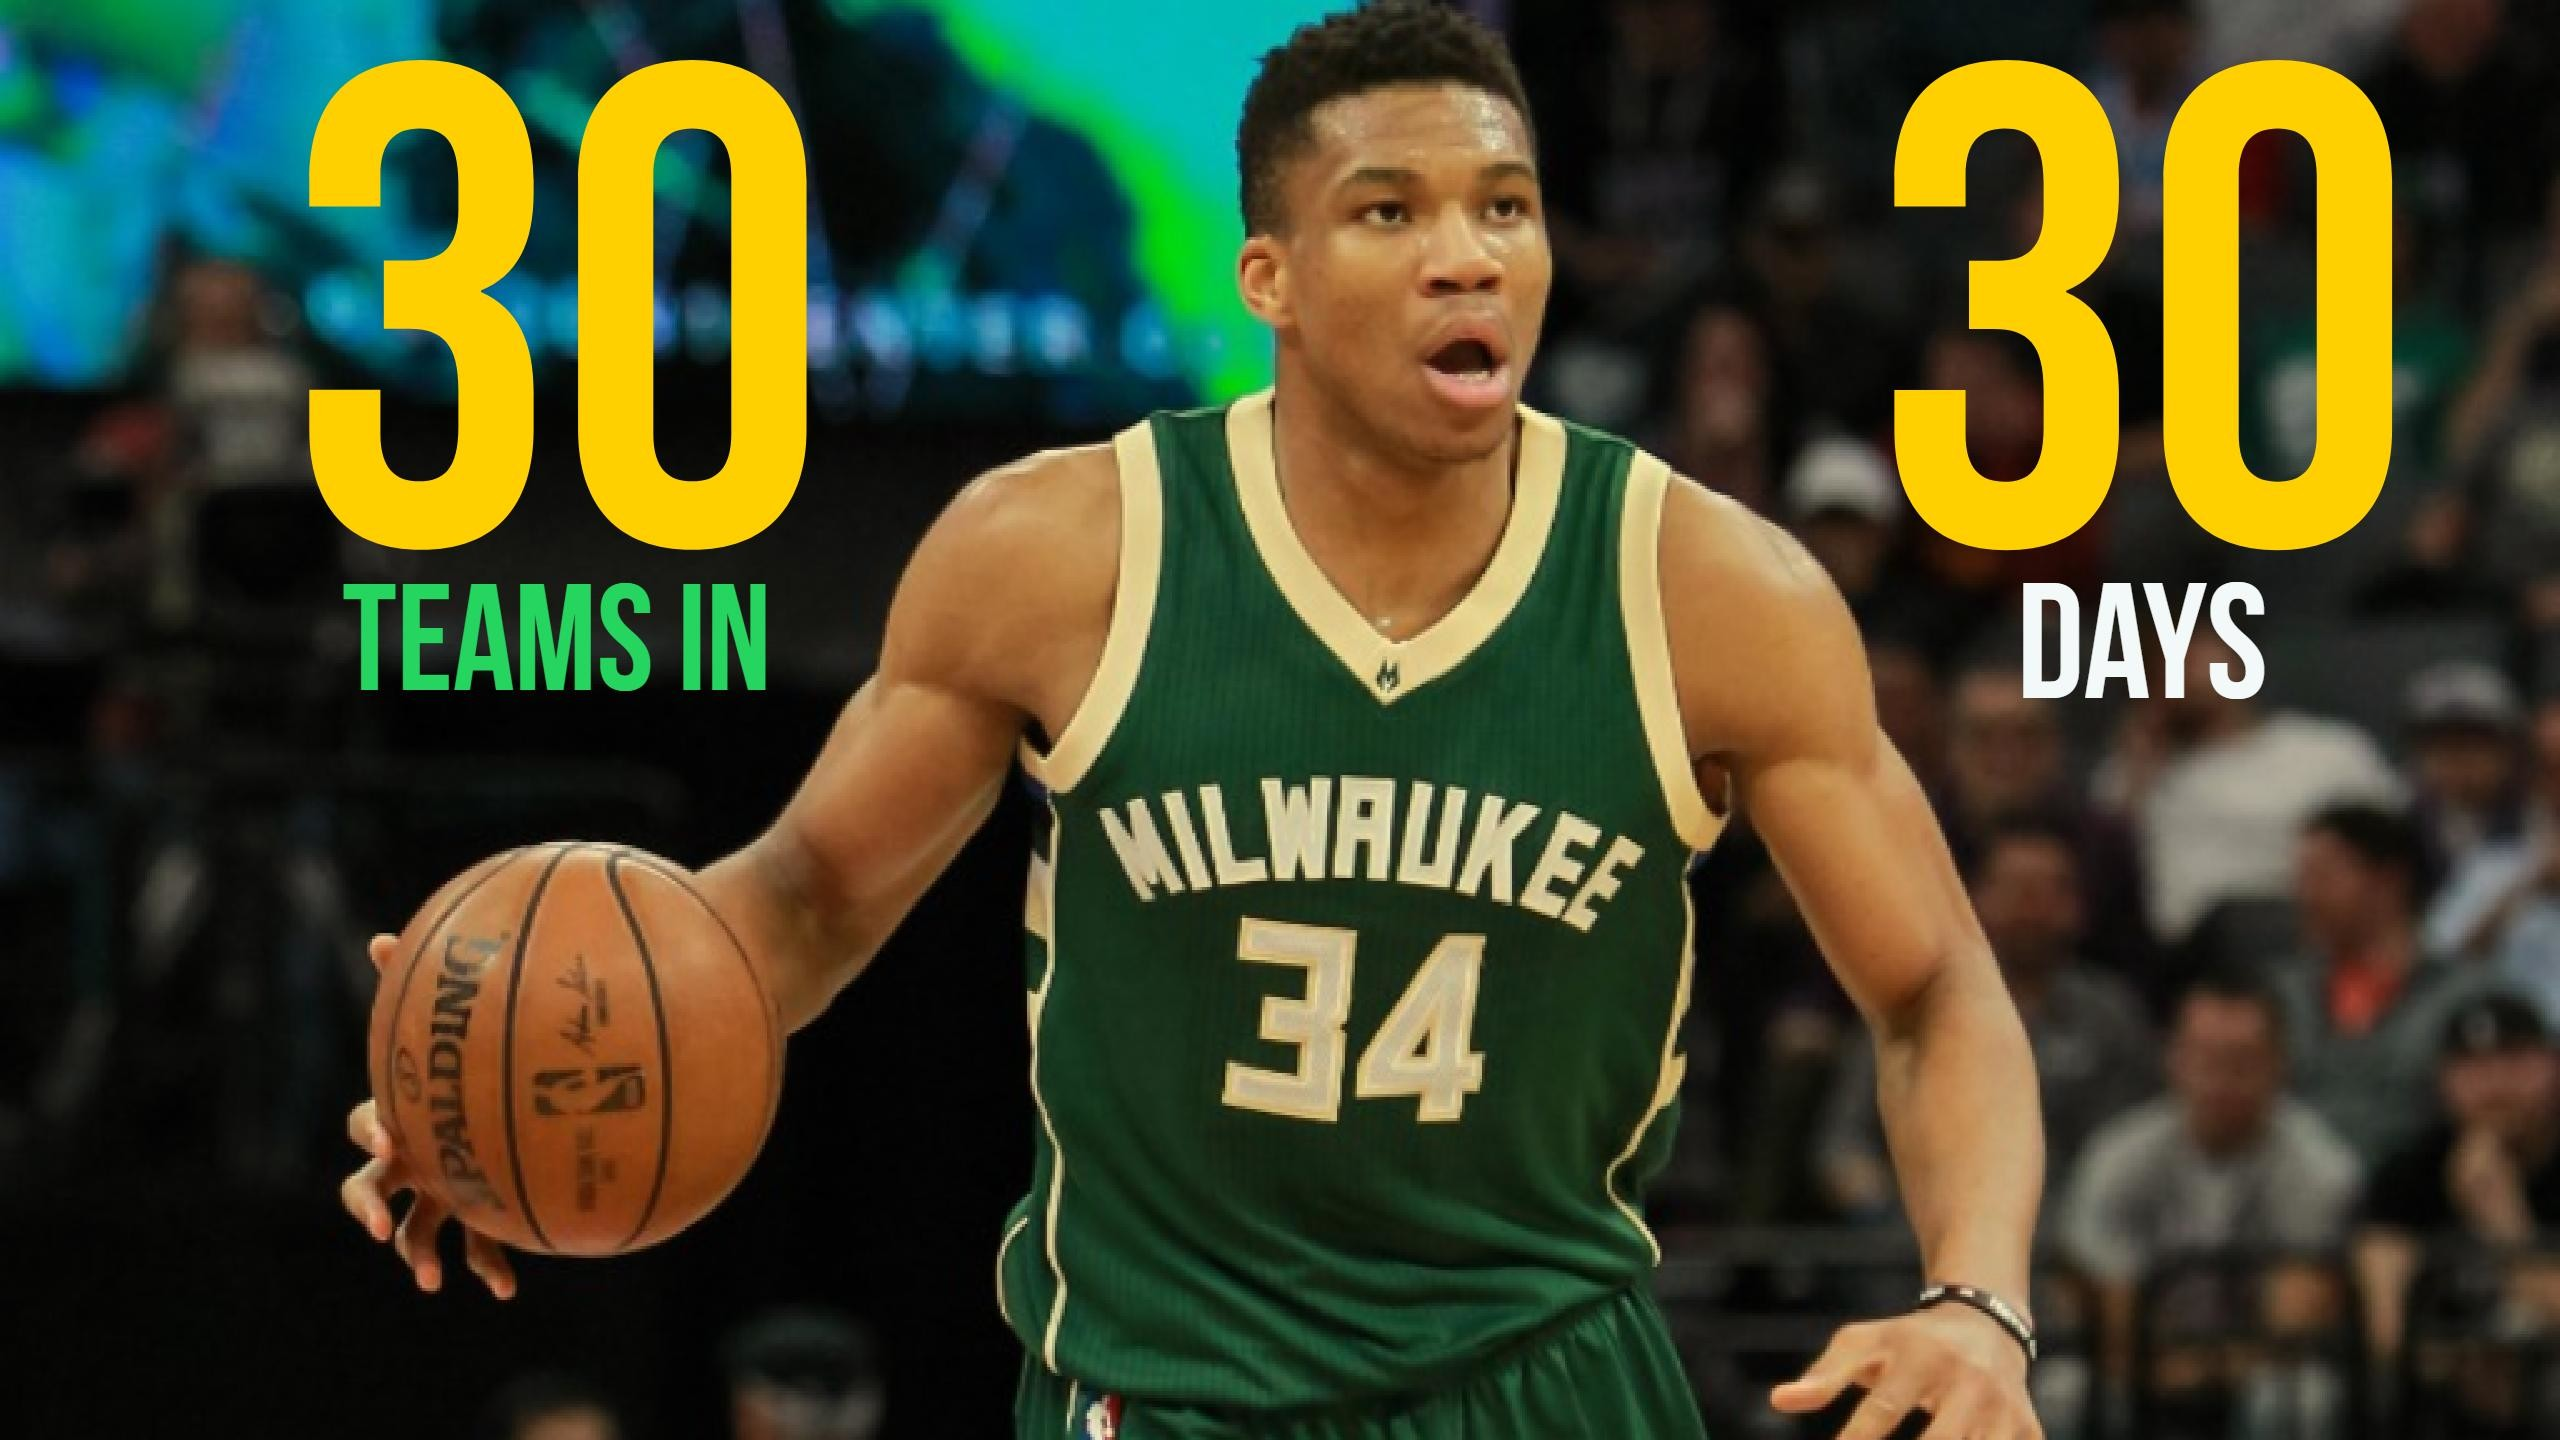 30 teams in 30 days: No Freak accident – Milwaukee Bucks could surprise